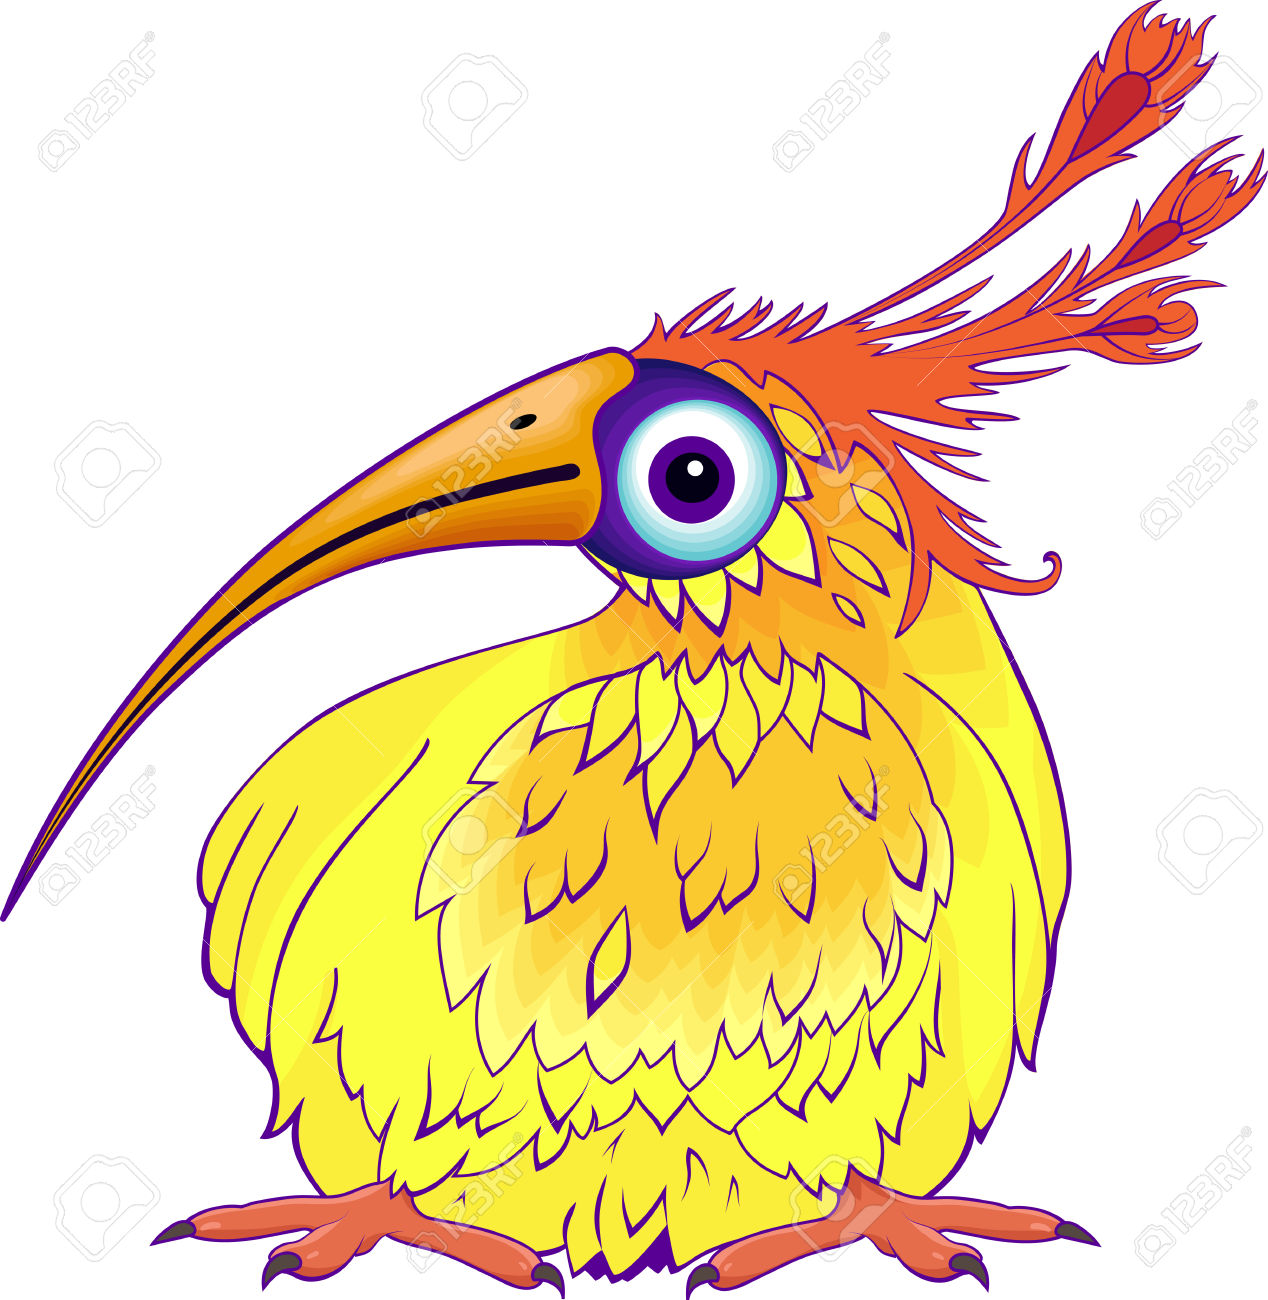 Funny Cartoon Bird With Long Beak And Long Feathers On It Royalty.